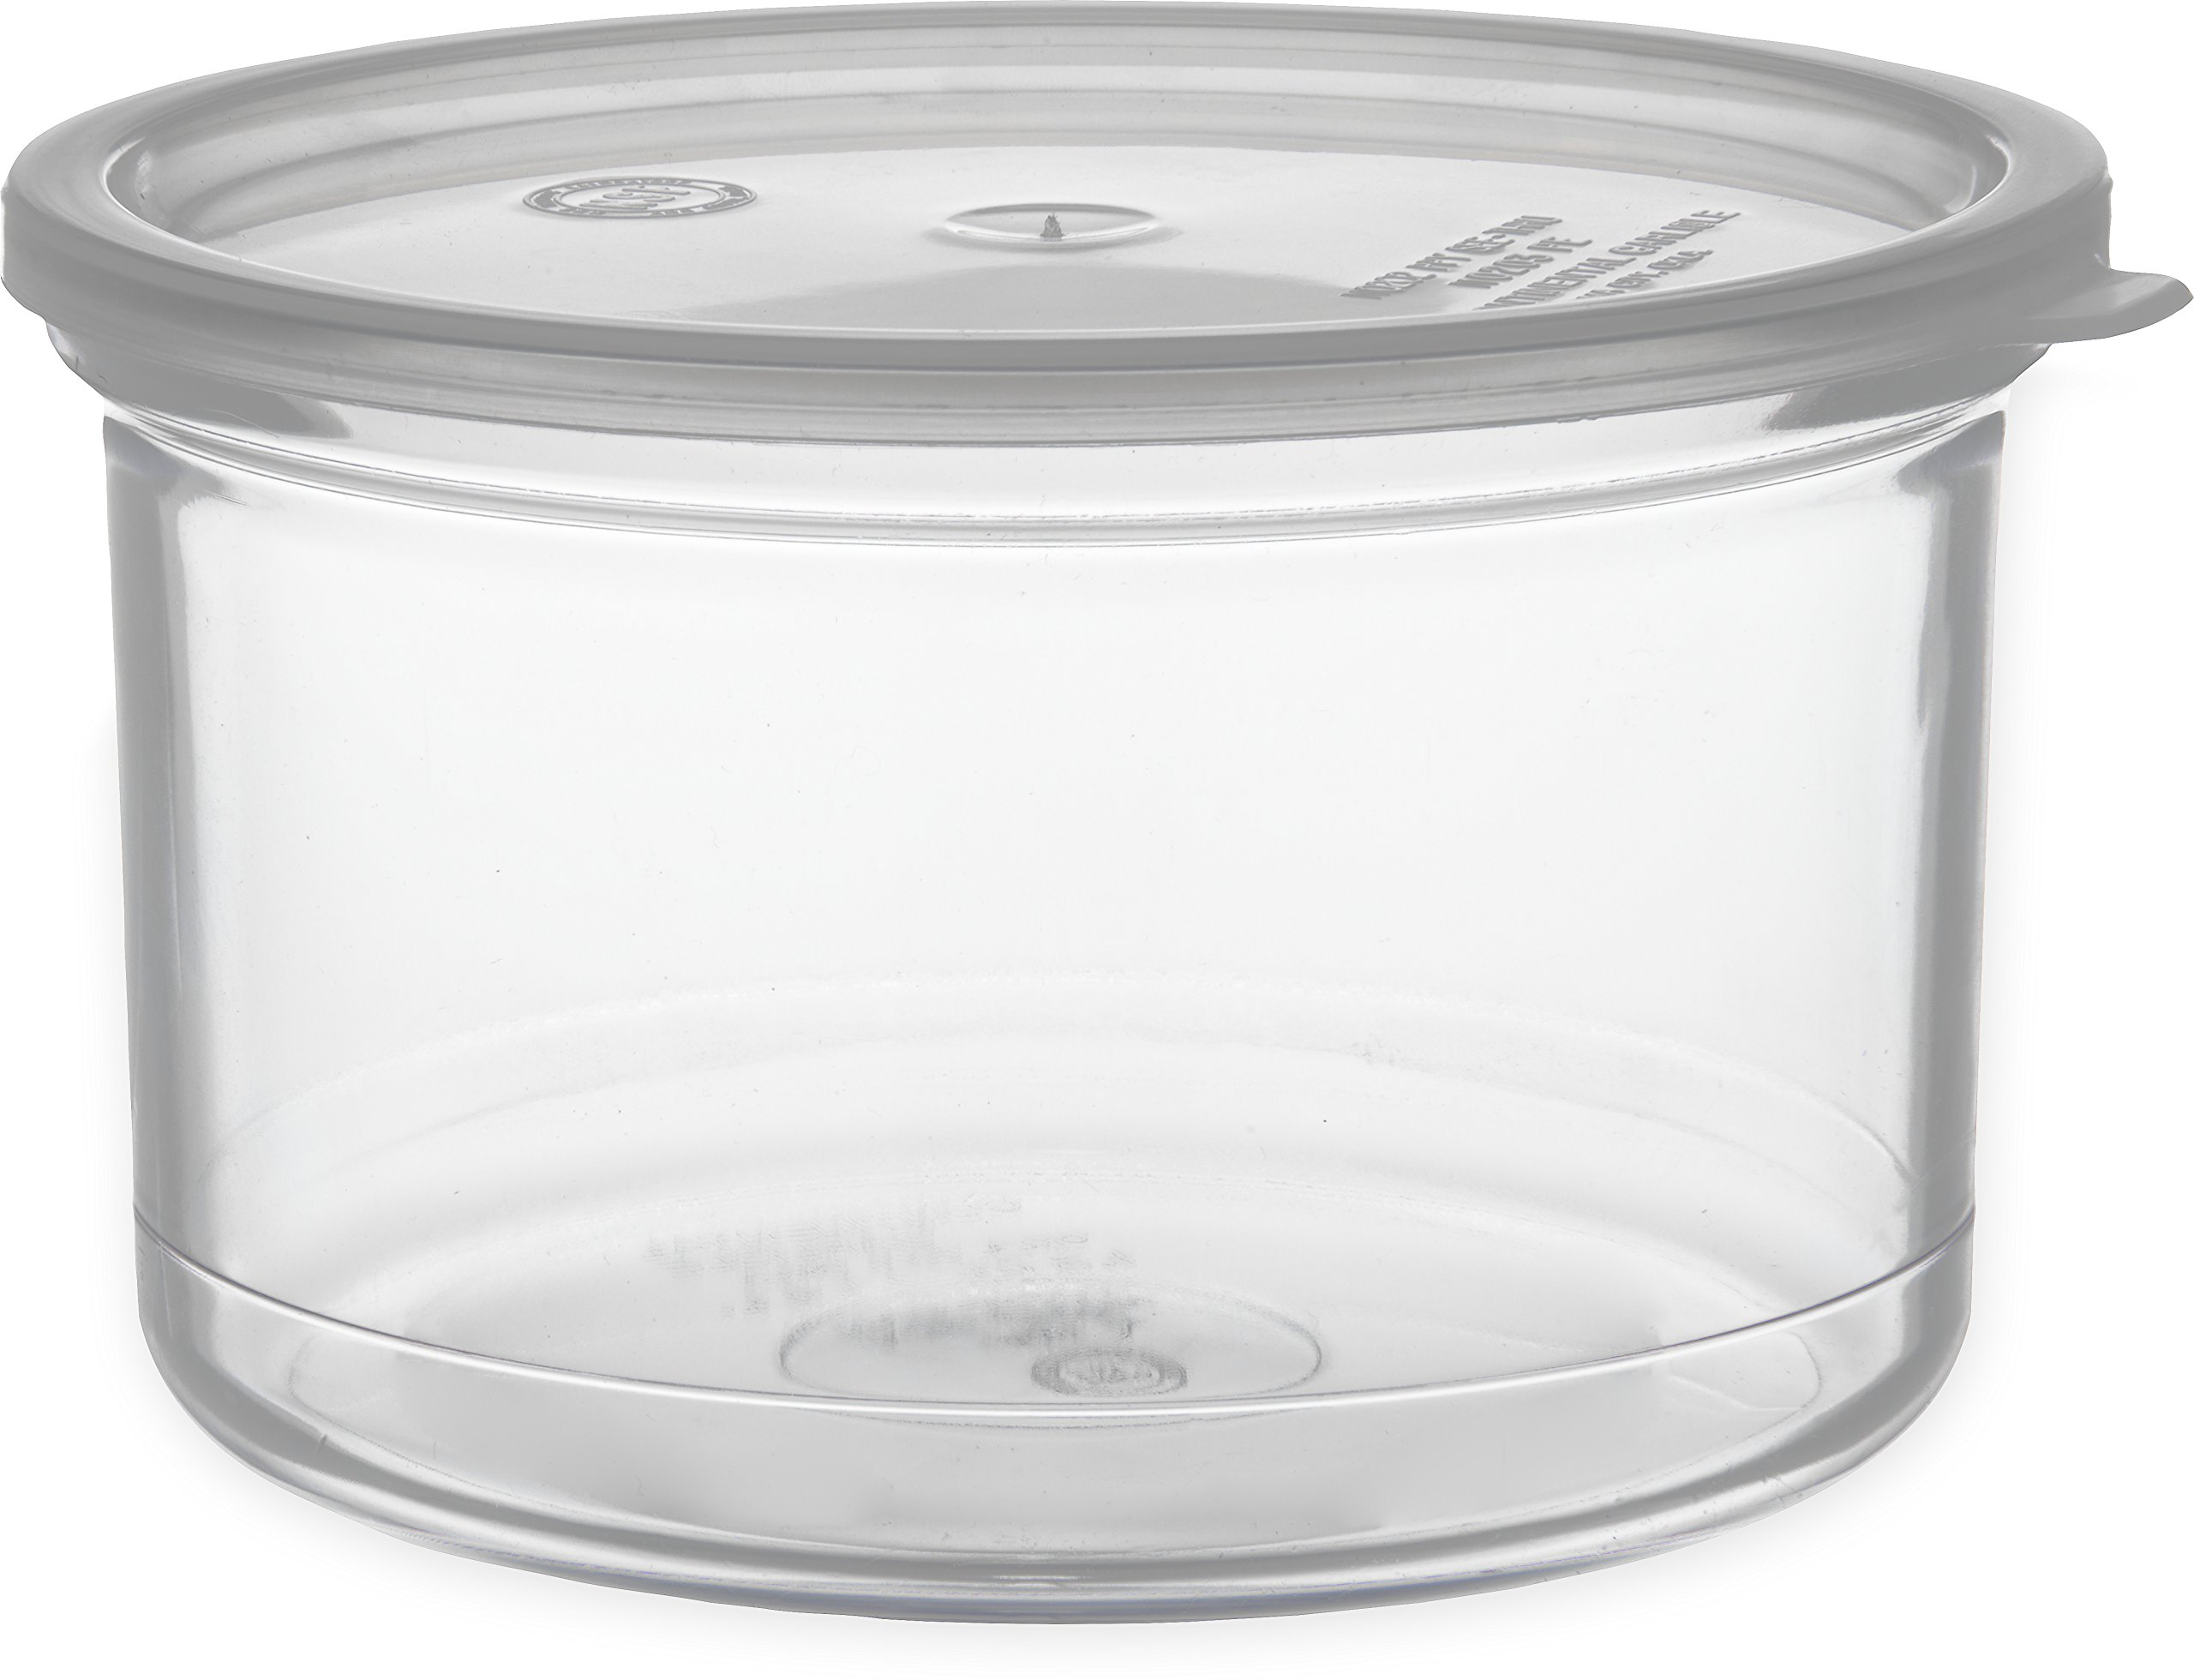 Carlisle 031607 Solid Color Commercial Round Storage Container with Lid, 1.5 Quart Capacity, Clear (Pack of 6) by Carlisle